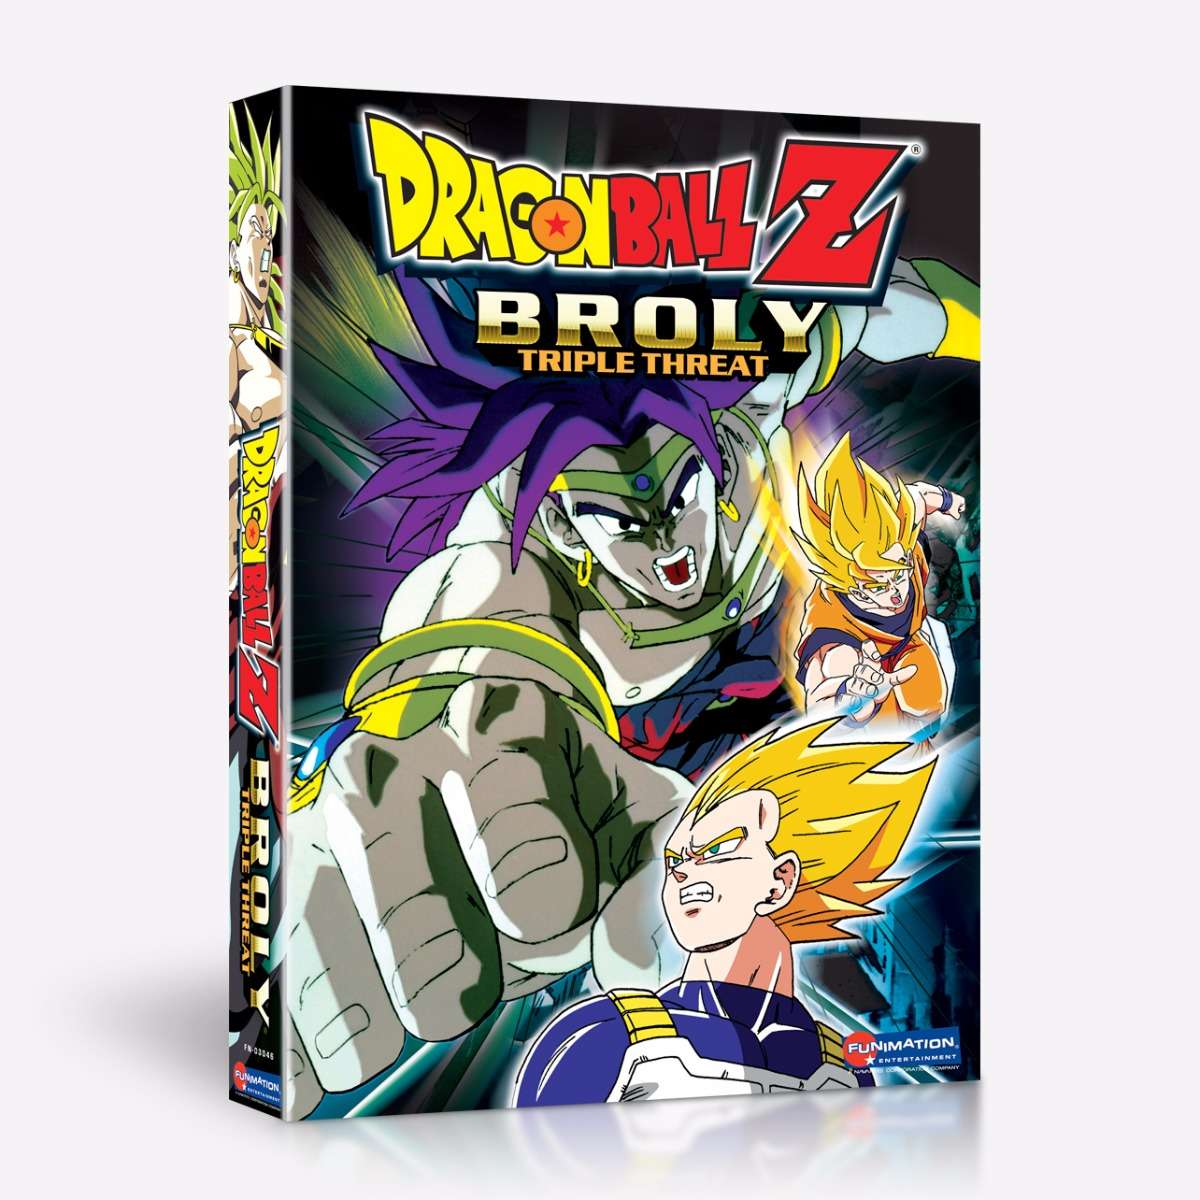 Broly Triple Threat home-video